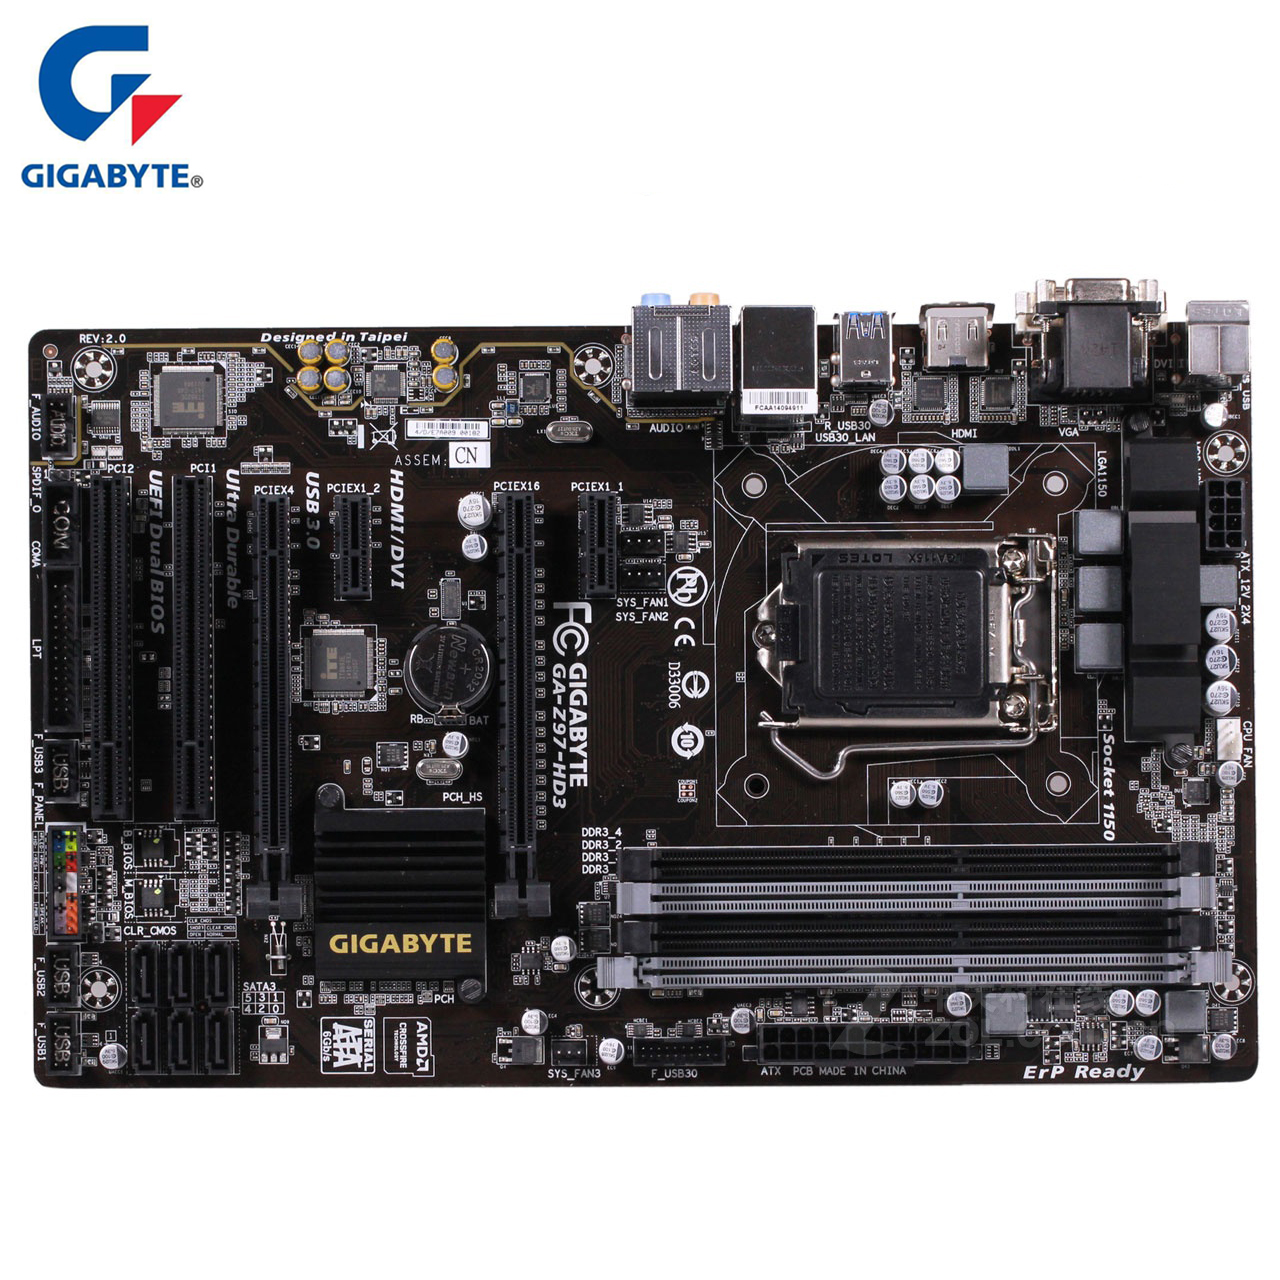 Gigabyte GA Z97 HD3 100% Original Motherboard LGA1150 DDR3 USB3.0 32G Z97 Z97 HD3 Desktop Mainboard SATA III Mother board Used